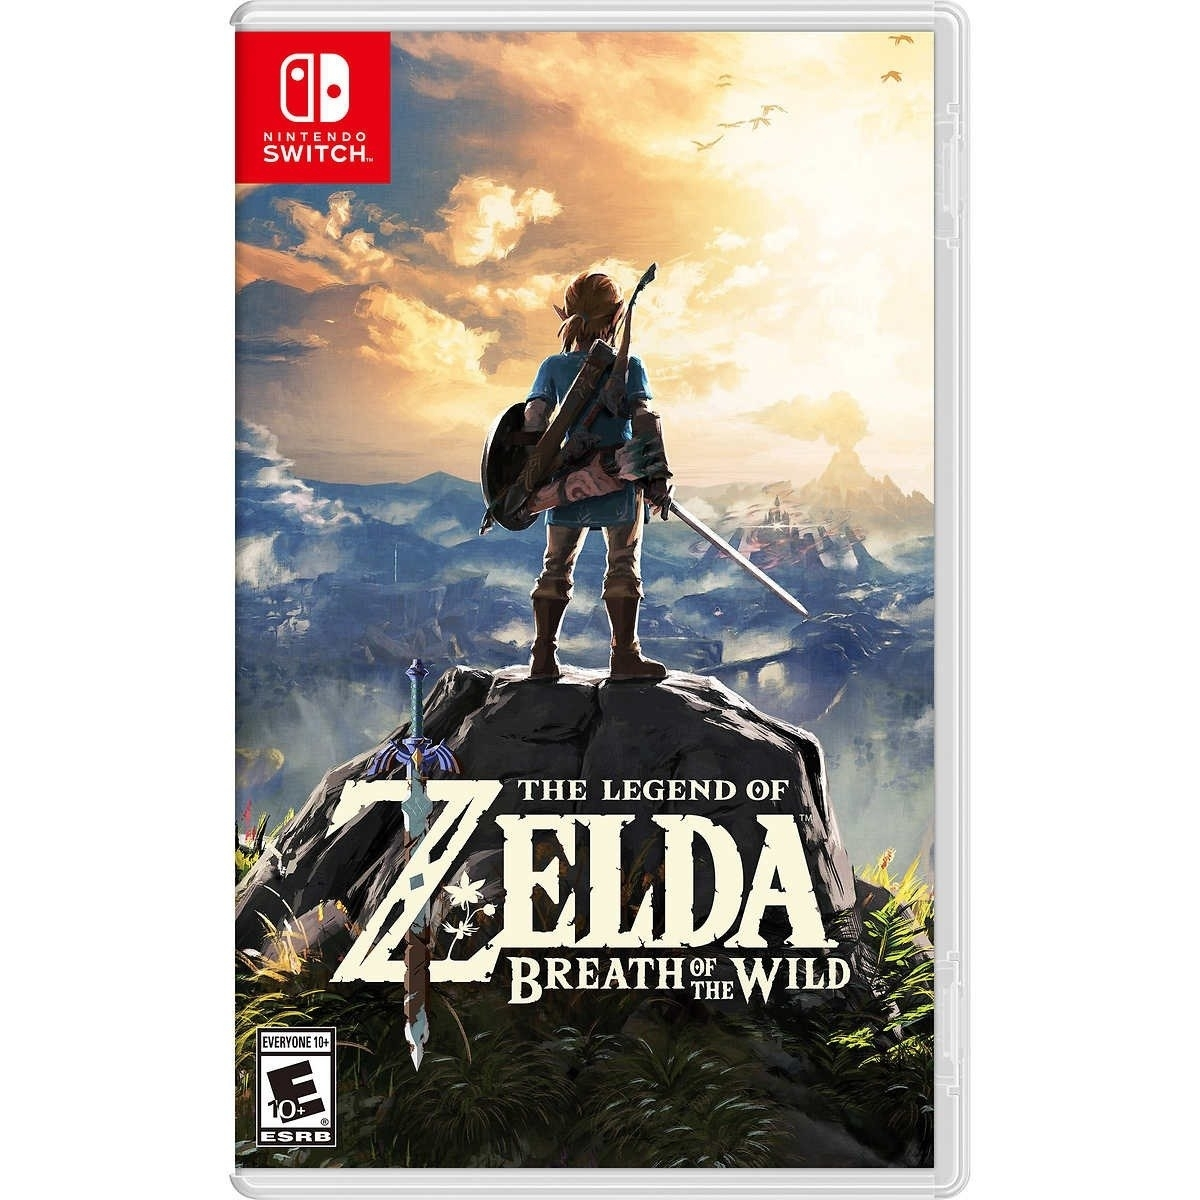 The Legend Of Zelda: Breath Of The Wild - Nintendo Switch - Atacado dos Jogos